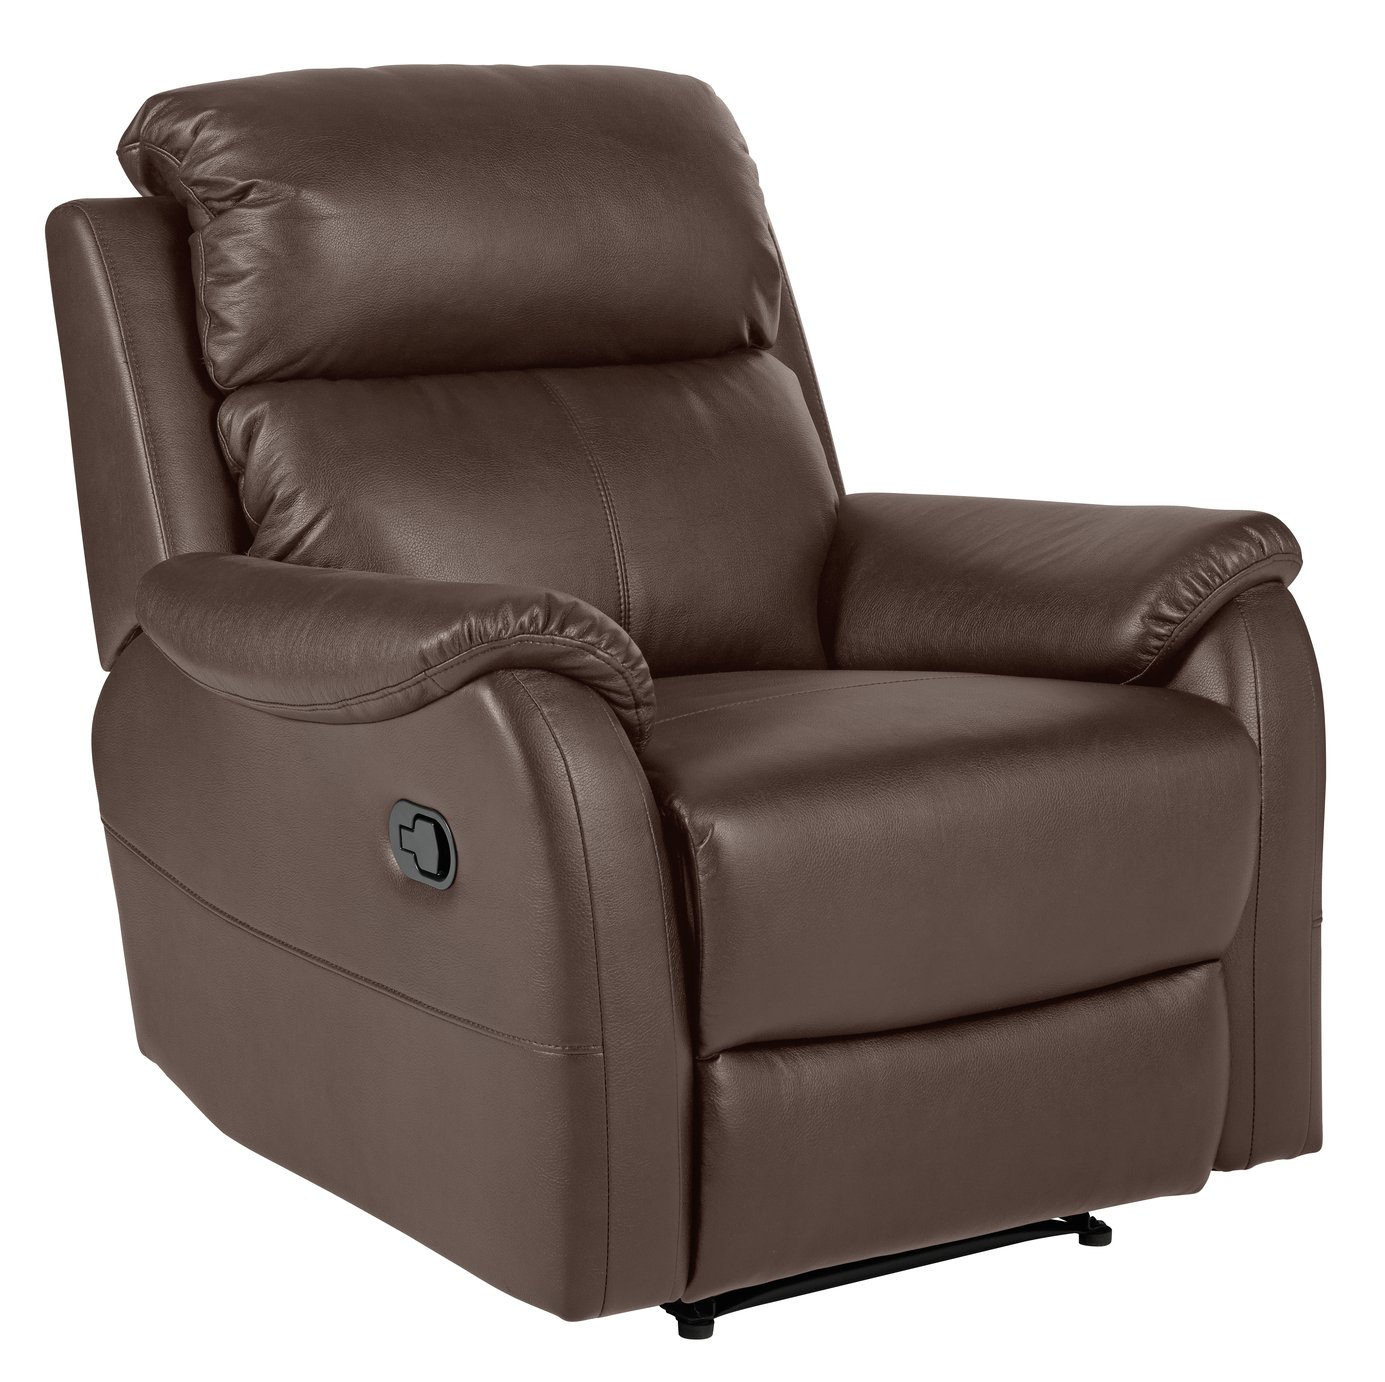 electric recliner chairs argos fabric dining side buy home tyler leather manual chair chocolate click to zoom